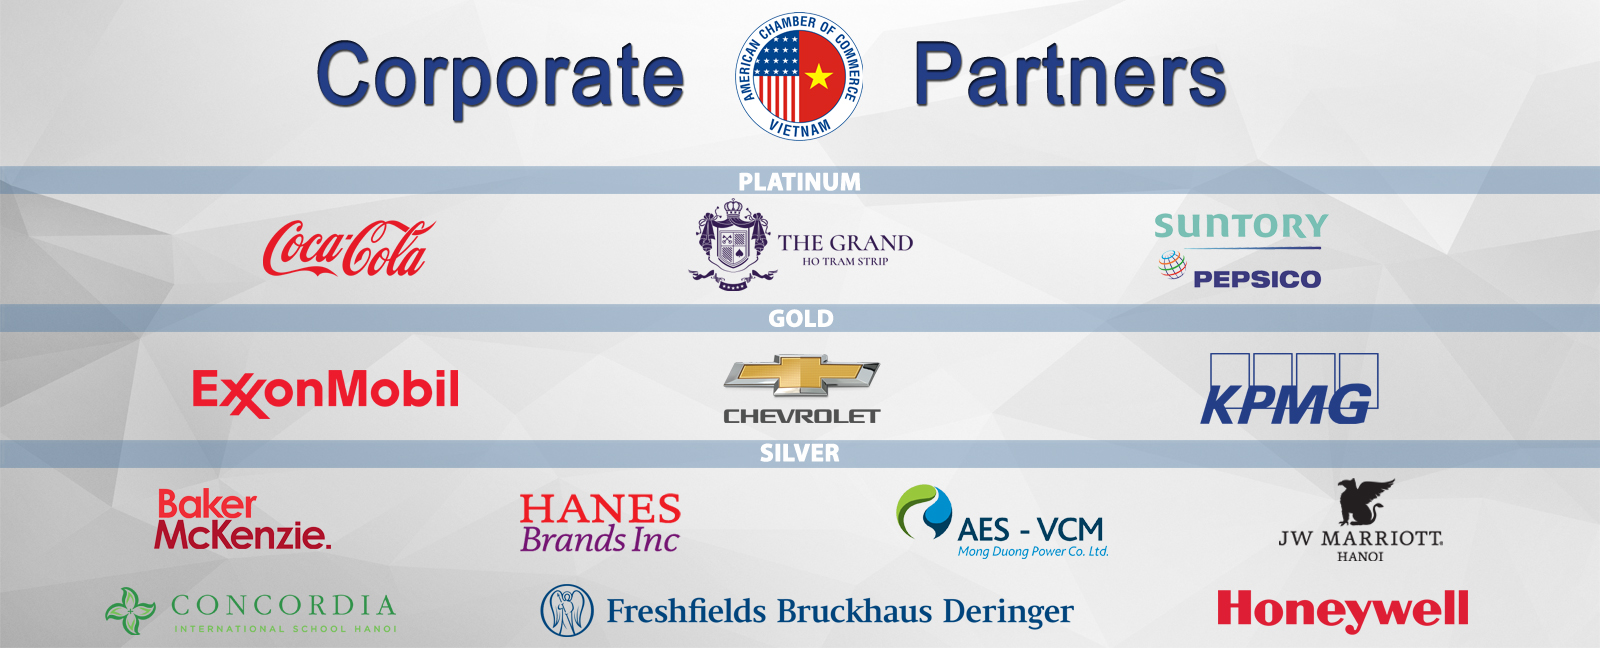 Corporate-Partners-email-1